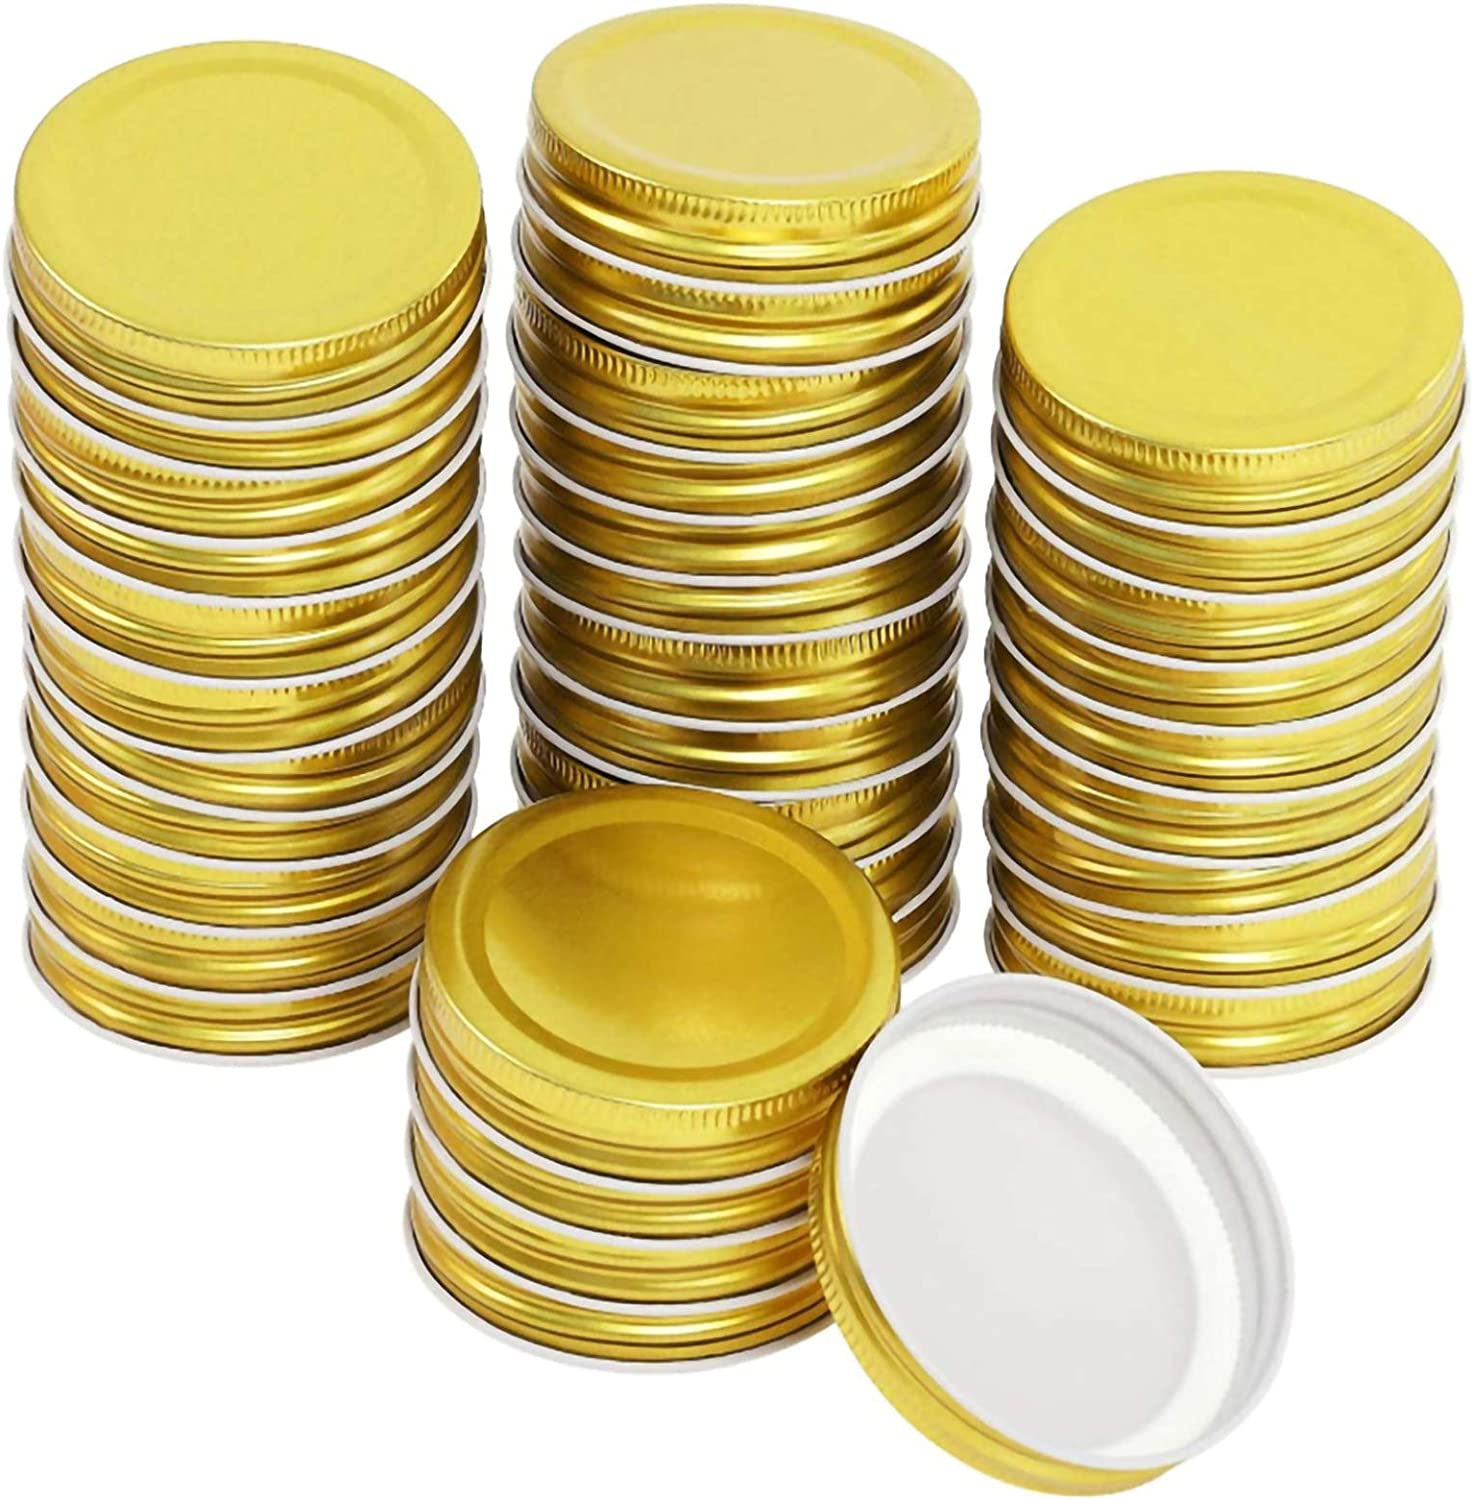 36 Packs Canning Lids, Regular Mouth Mason Jar Lids, Reusable and Leak Proof Stainless Steel Regular Mouth Mason Storage Canning Lids,for Food Storage Canning Jar Lids (2.76 in/7cm, Gold)